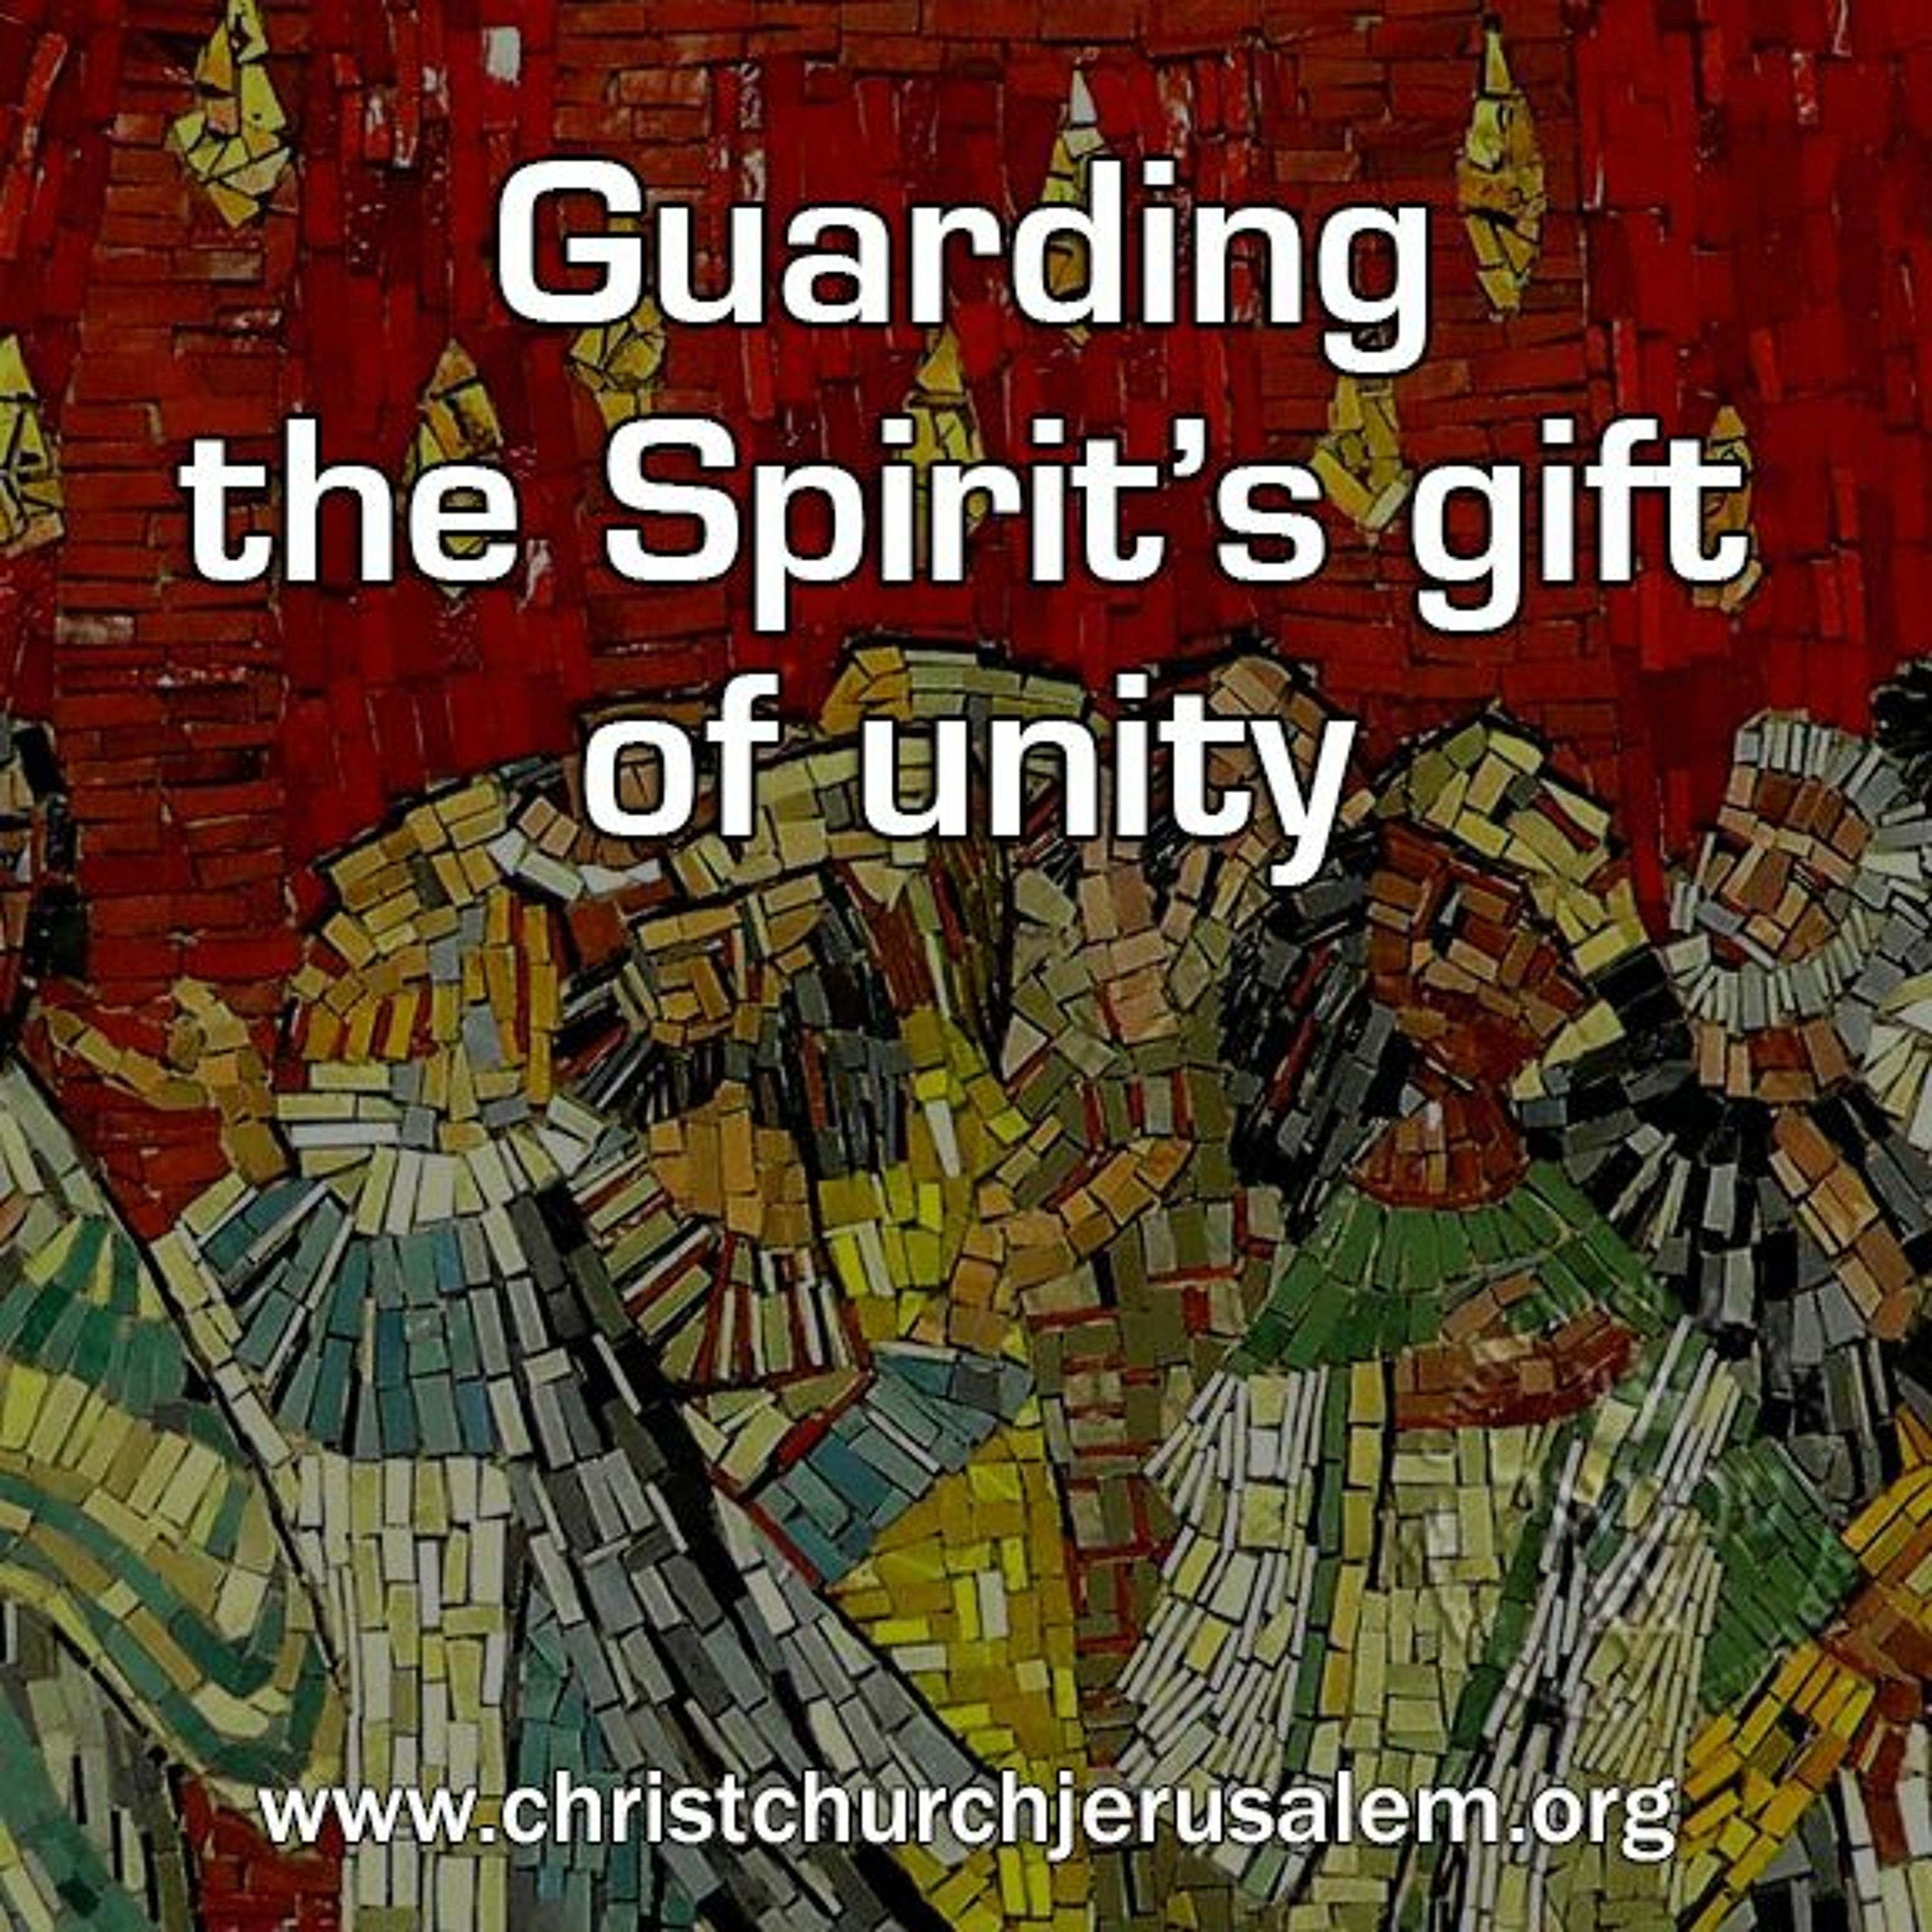 Guarding the Spirit's gift of unity